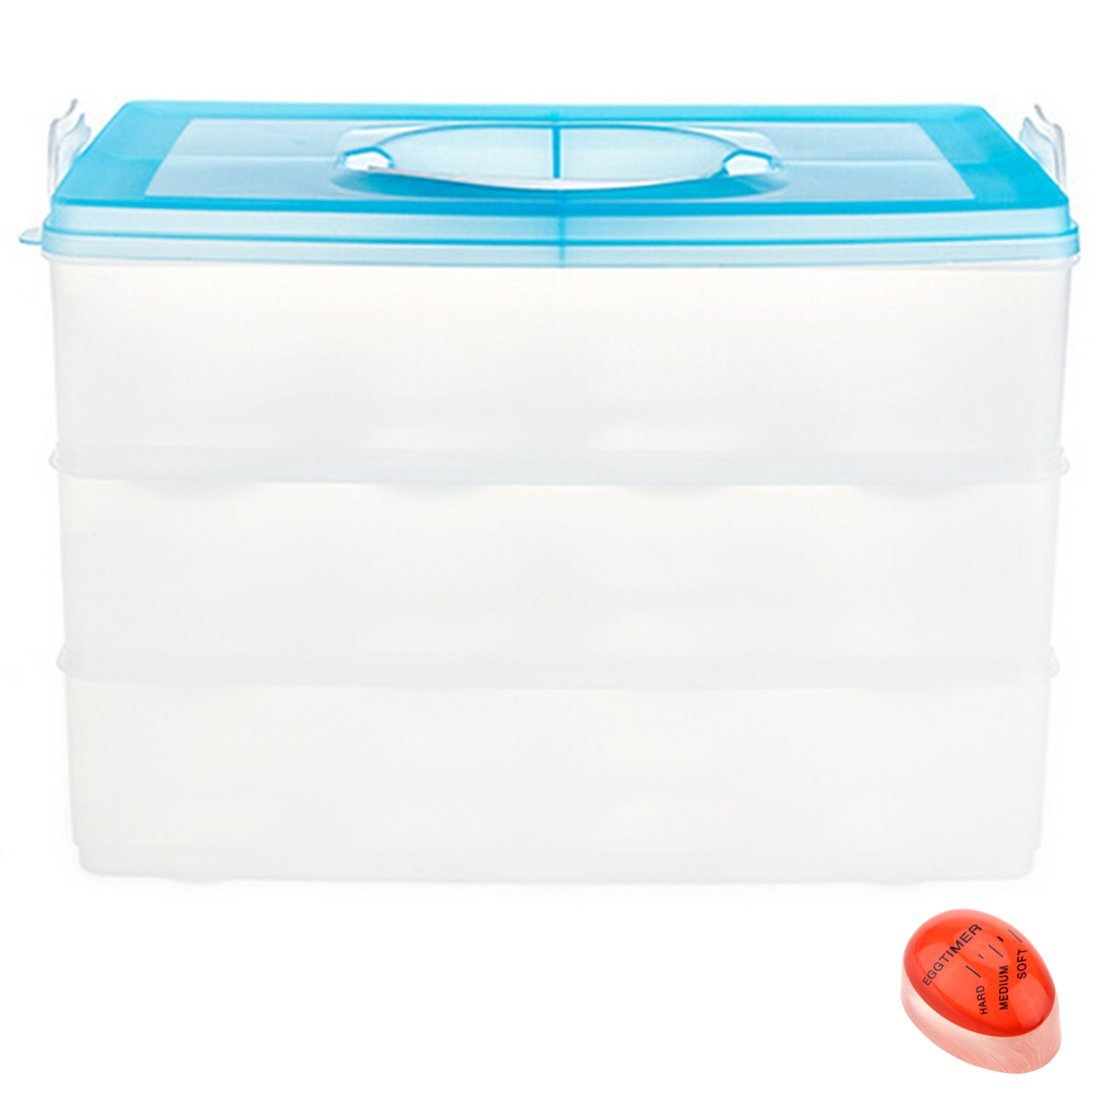 Tosnail 3-Layer Snap Stackable Egg Storage Container Egg Storage Bin with Lid - Bonus 1 Color Changing Egg Timer